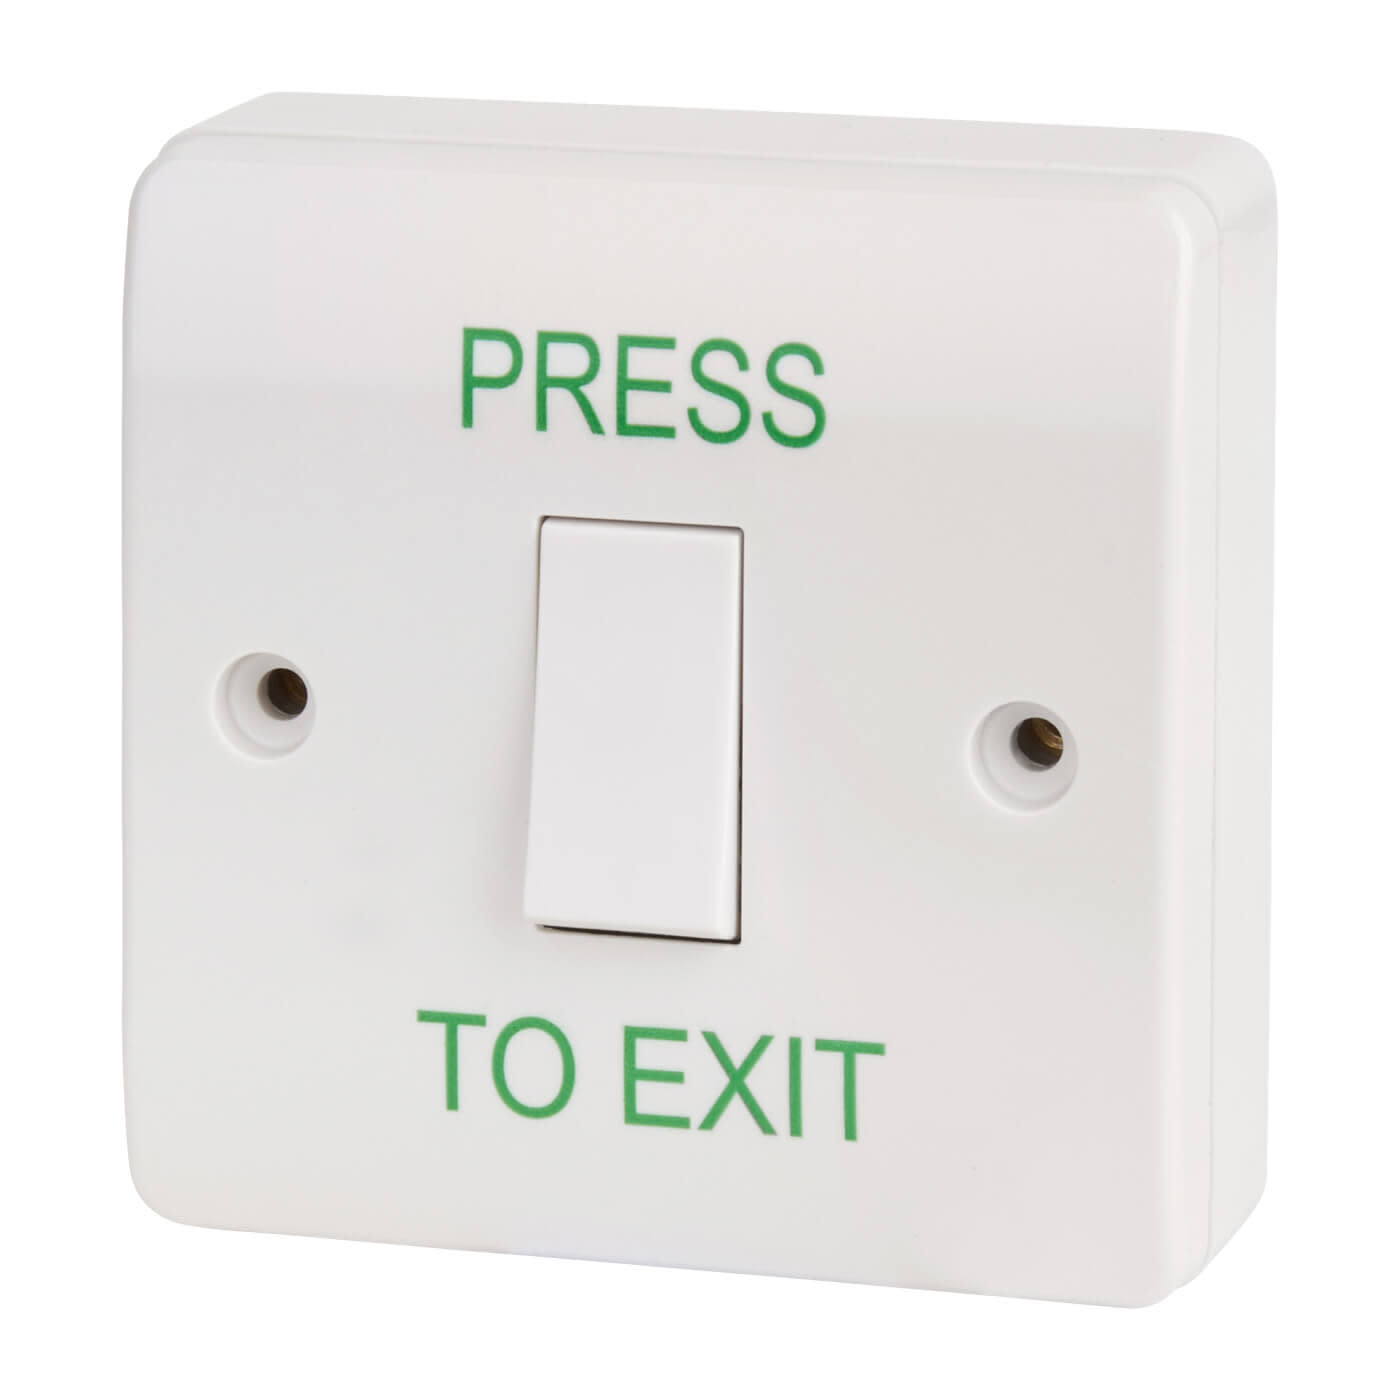 Egress Button - 85 x 85mm)